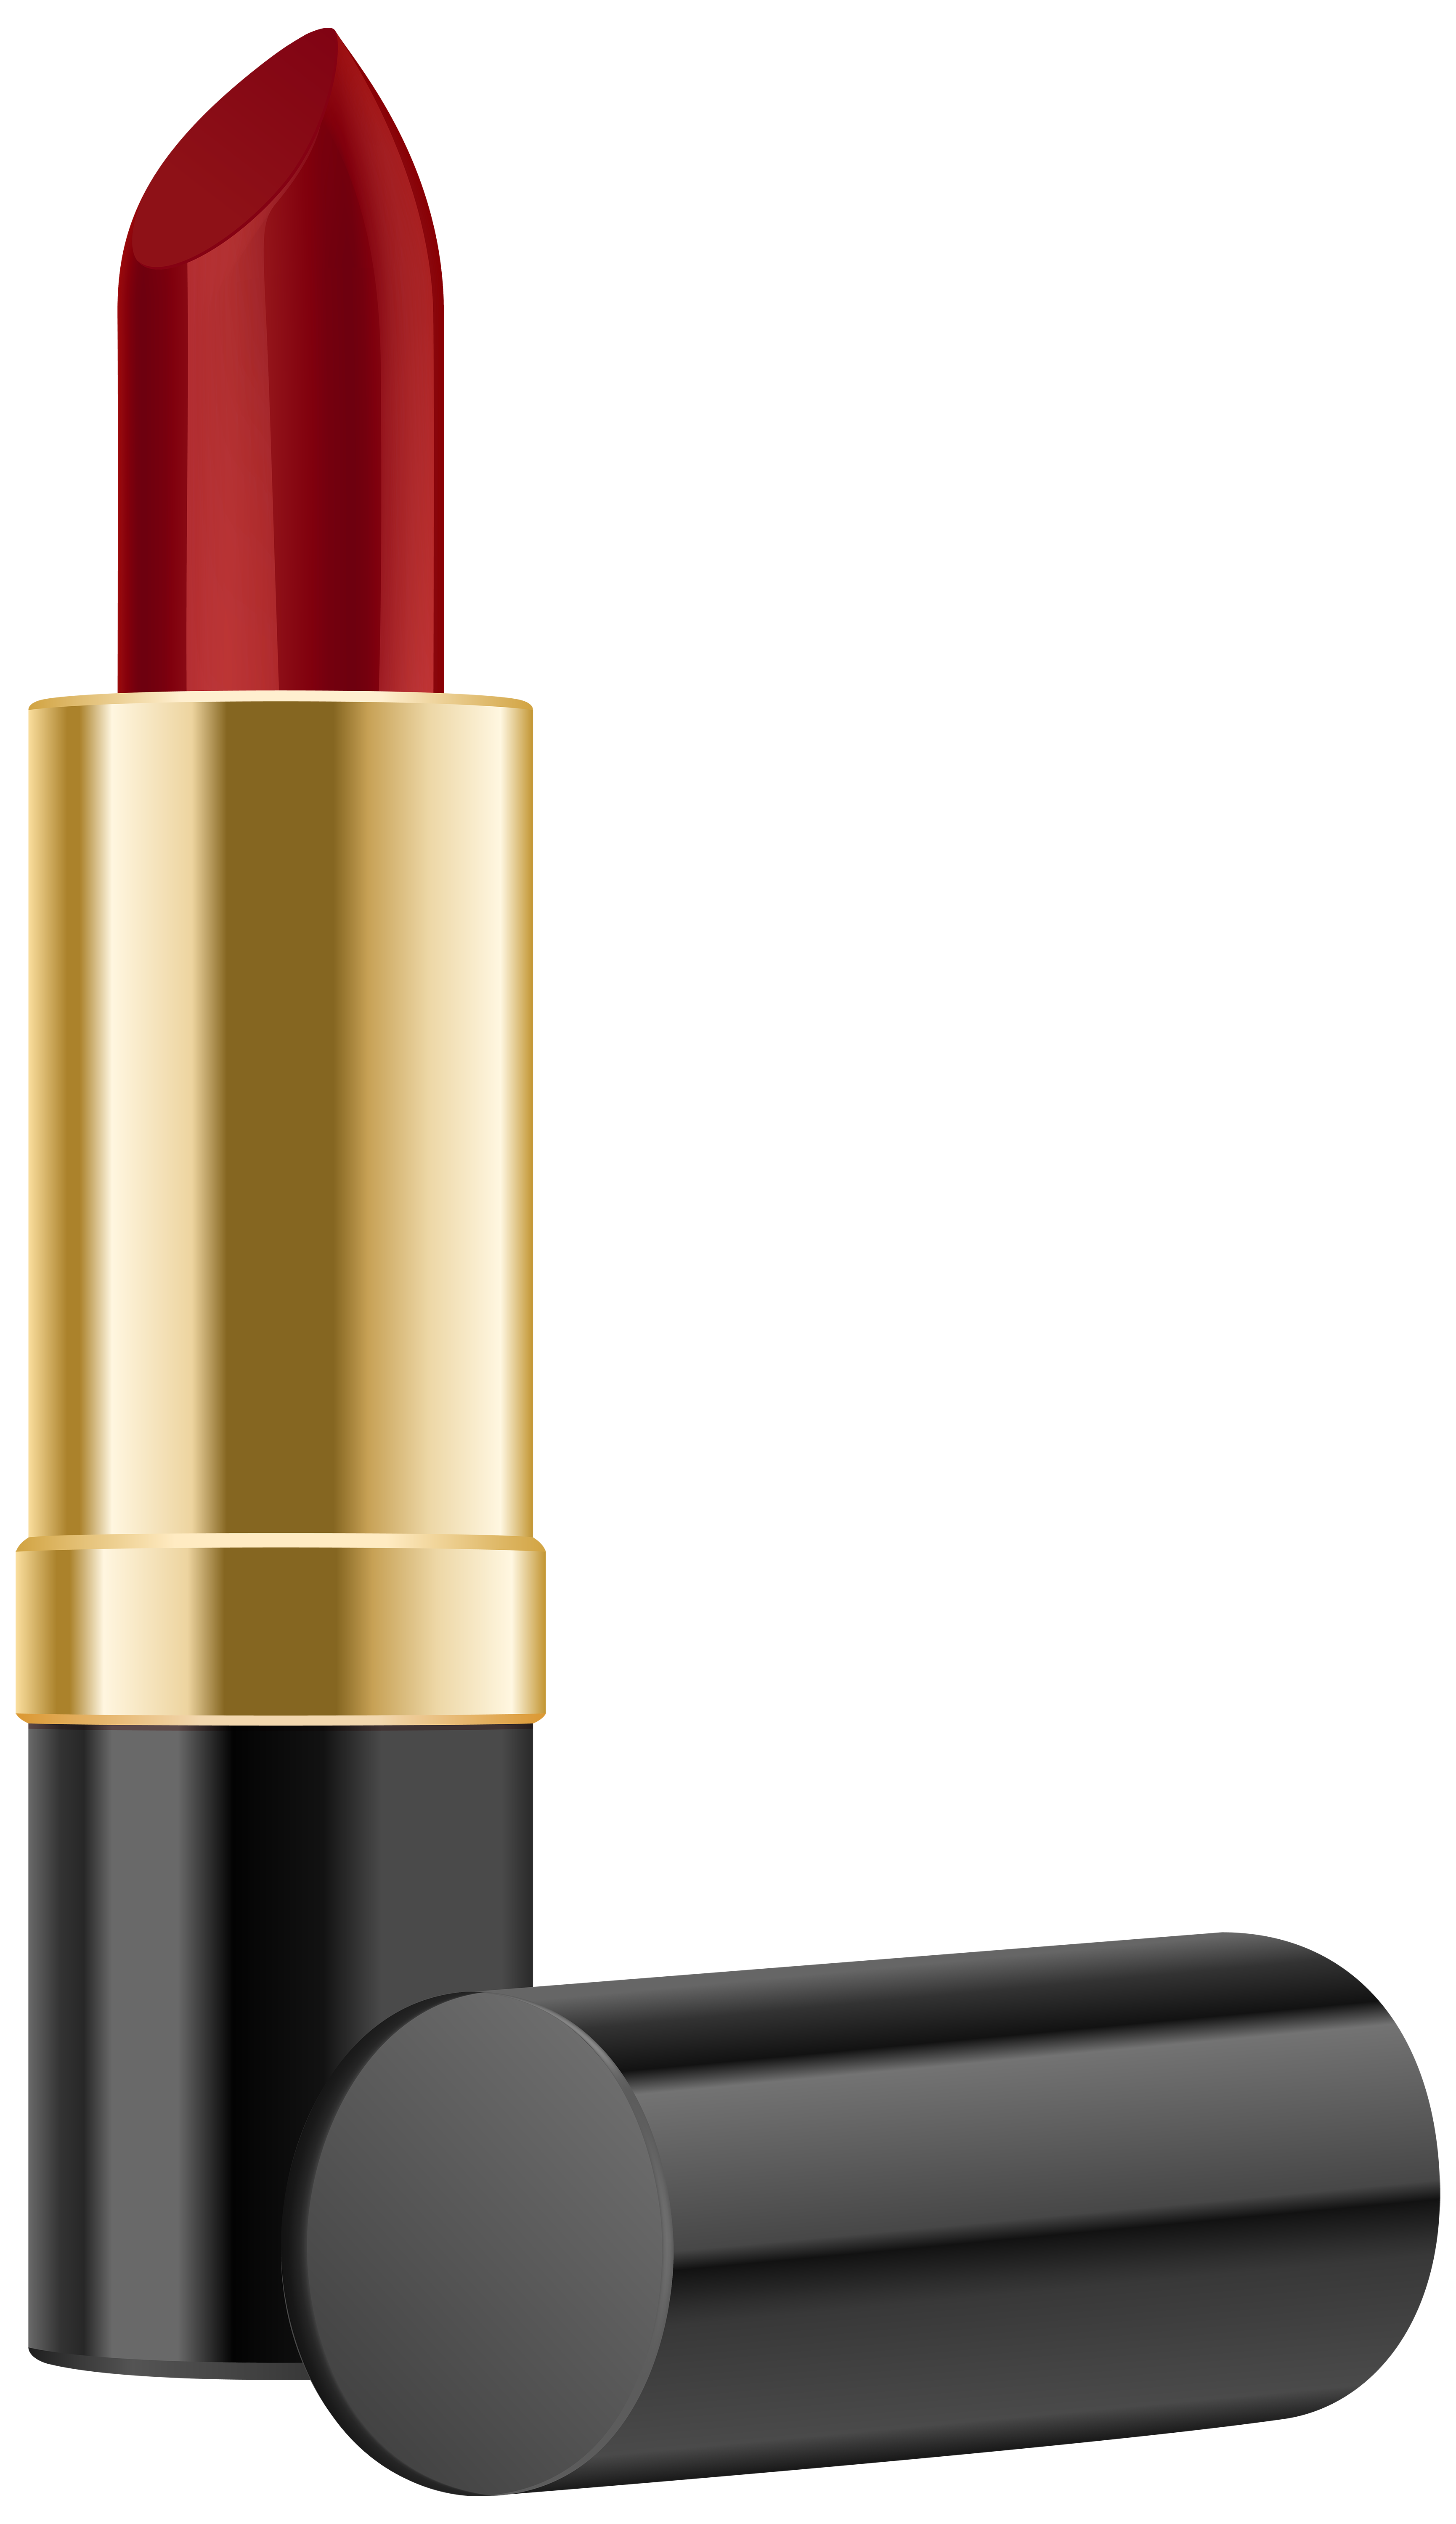 Lipstick clipart 20 free Cliparts | Download images on ...